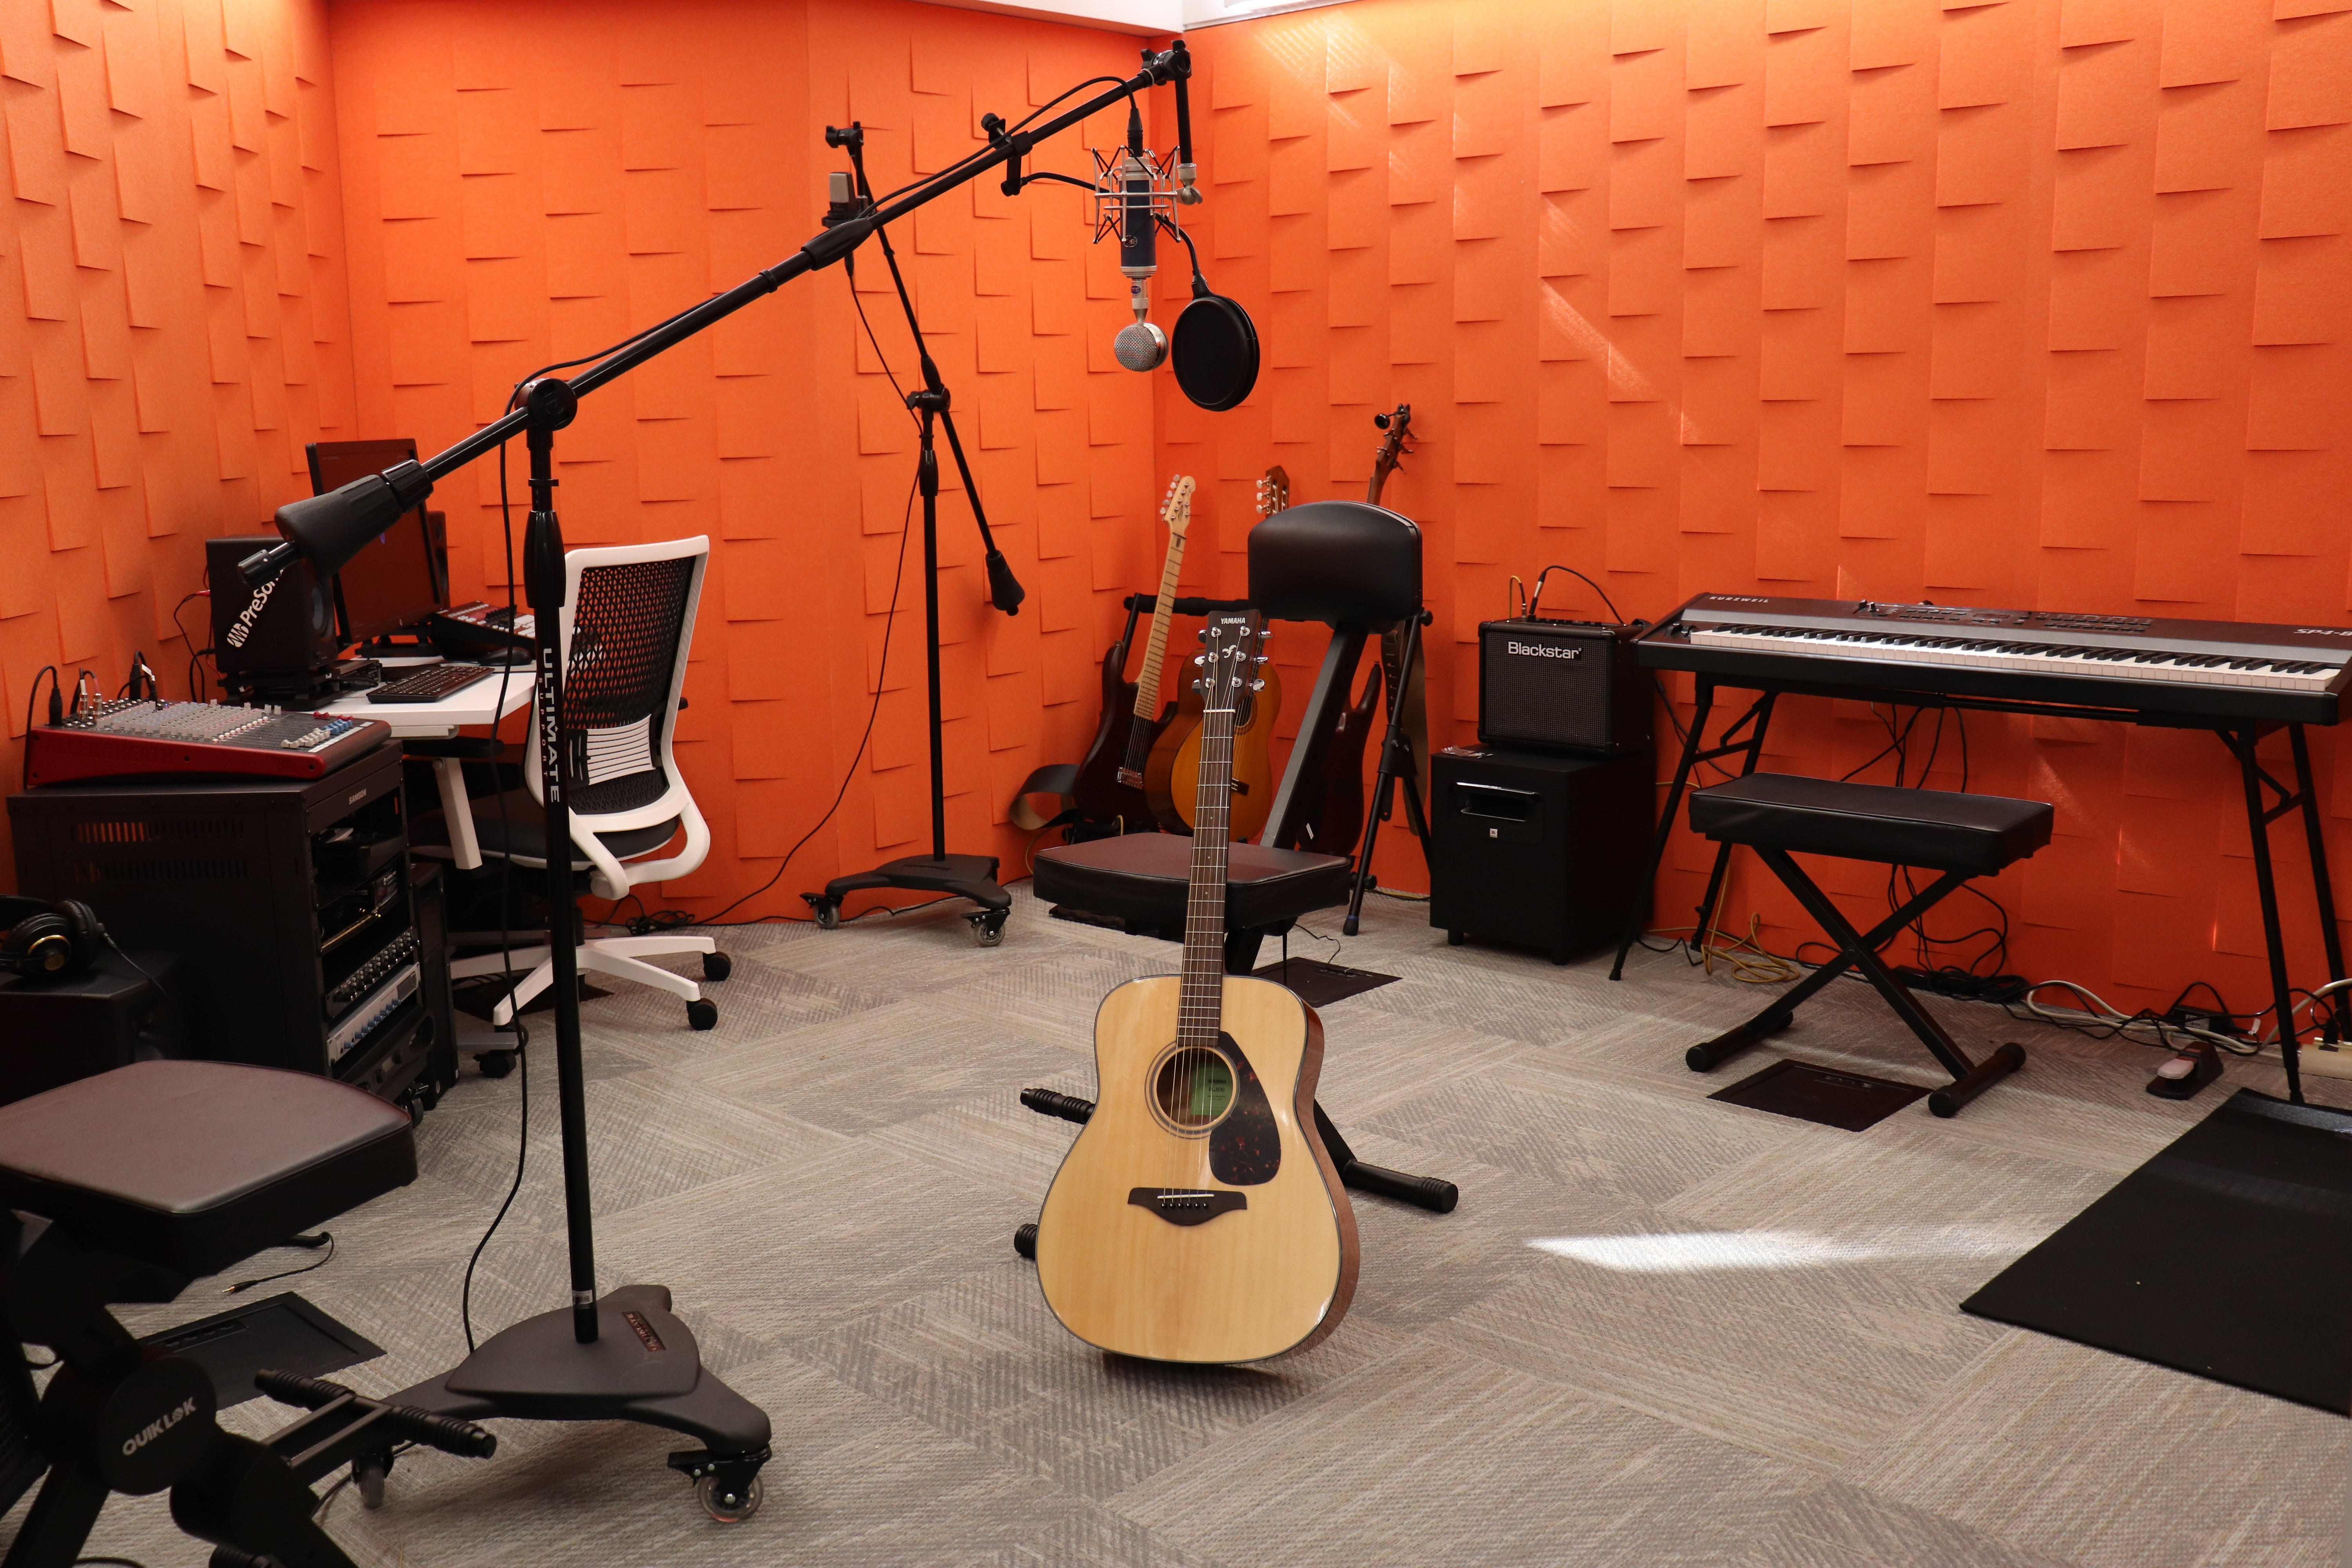 Music Studio Orientation